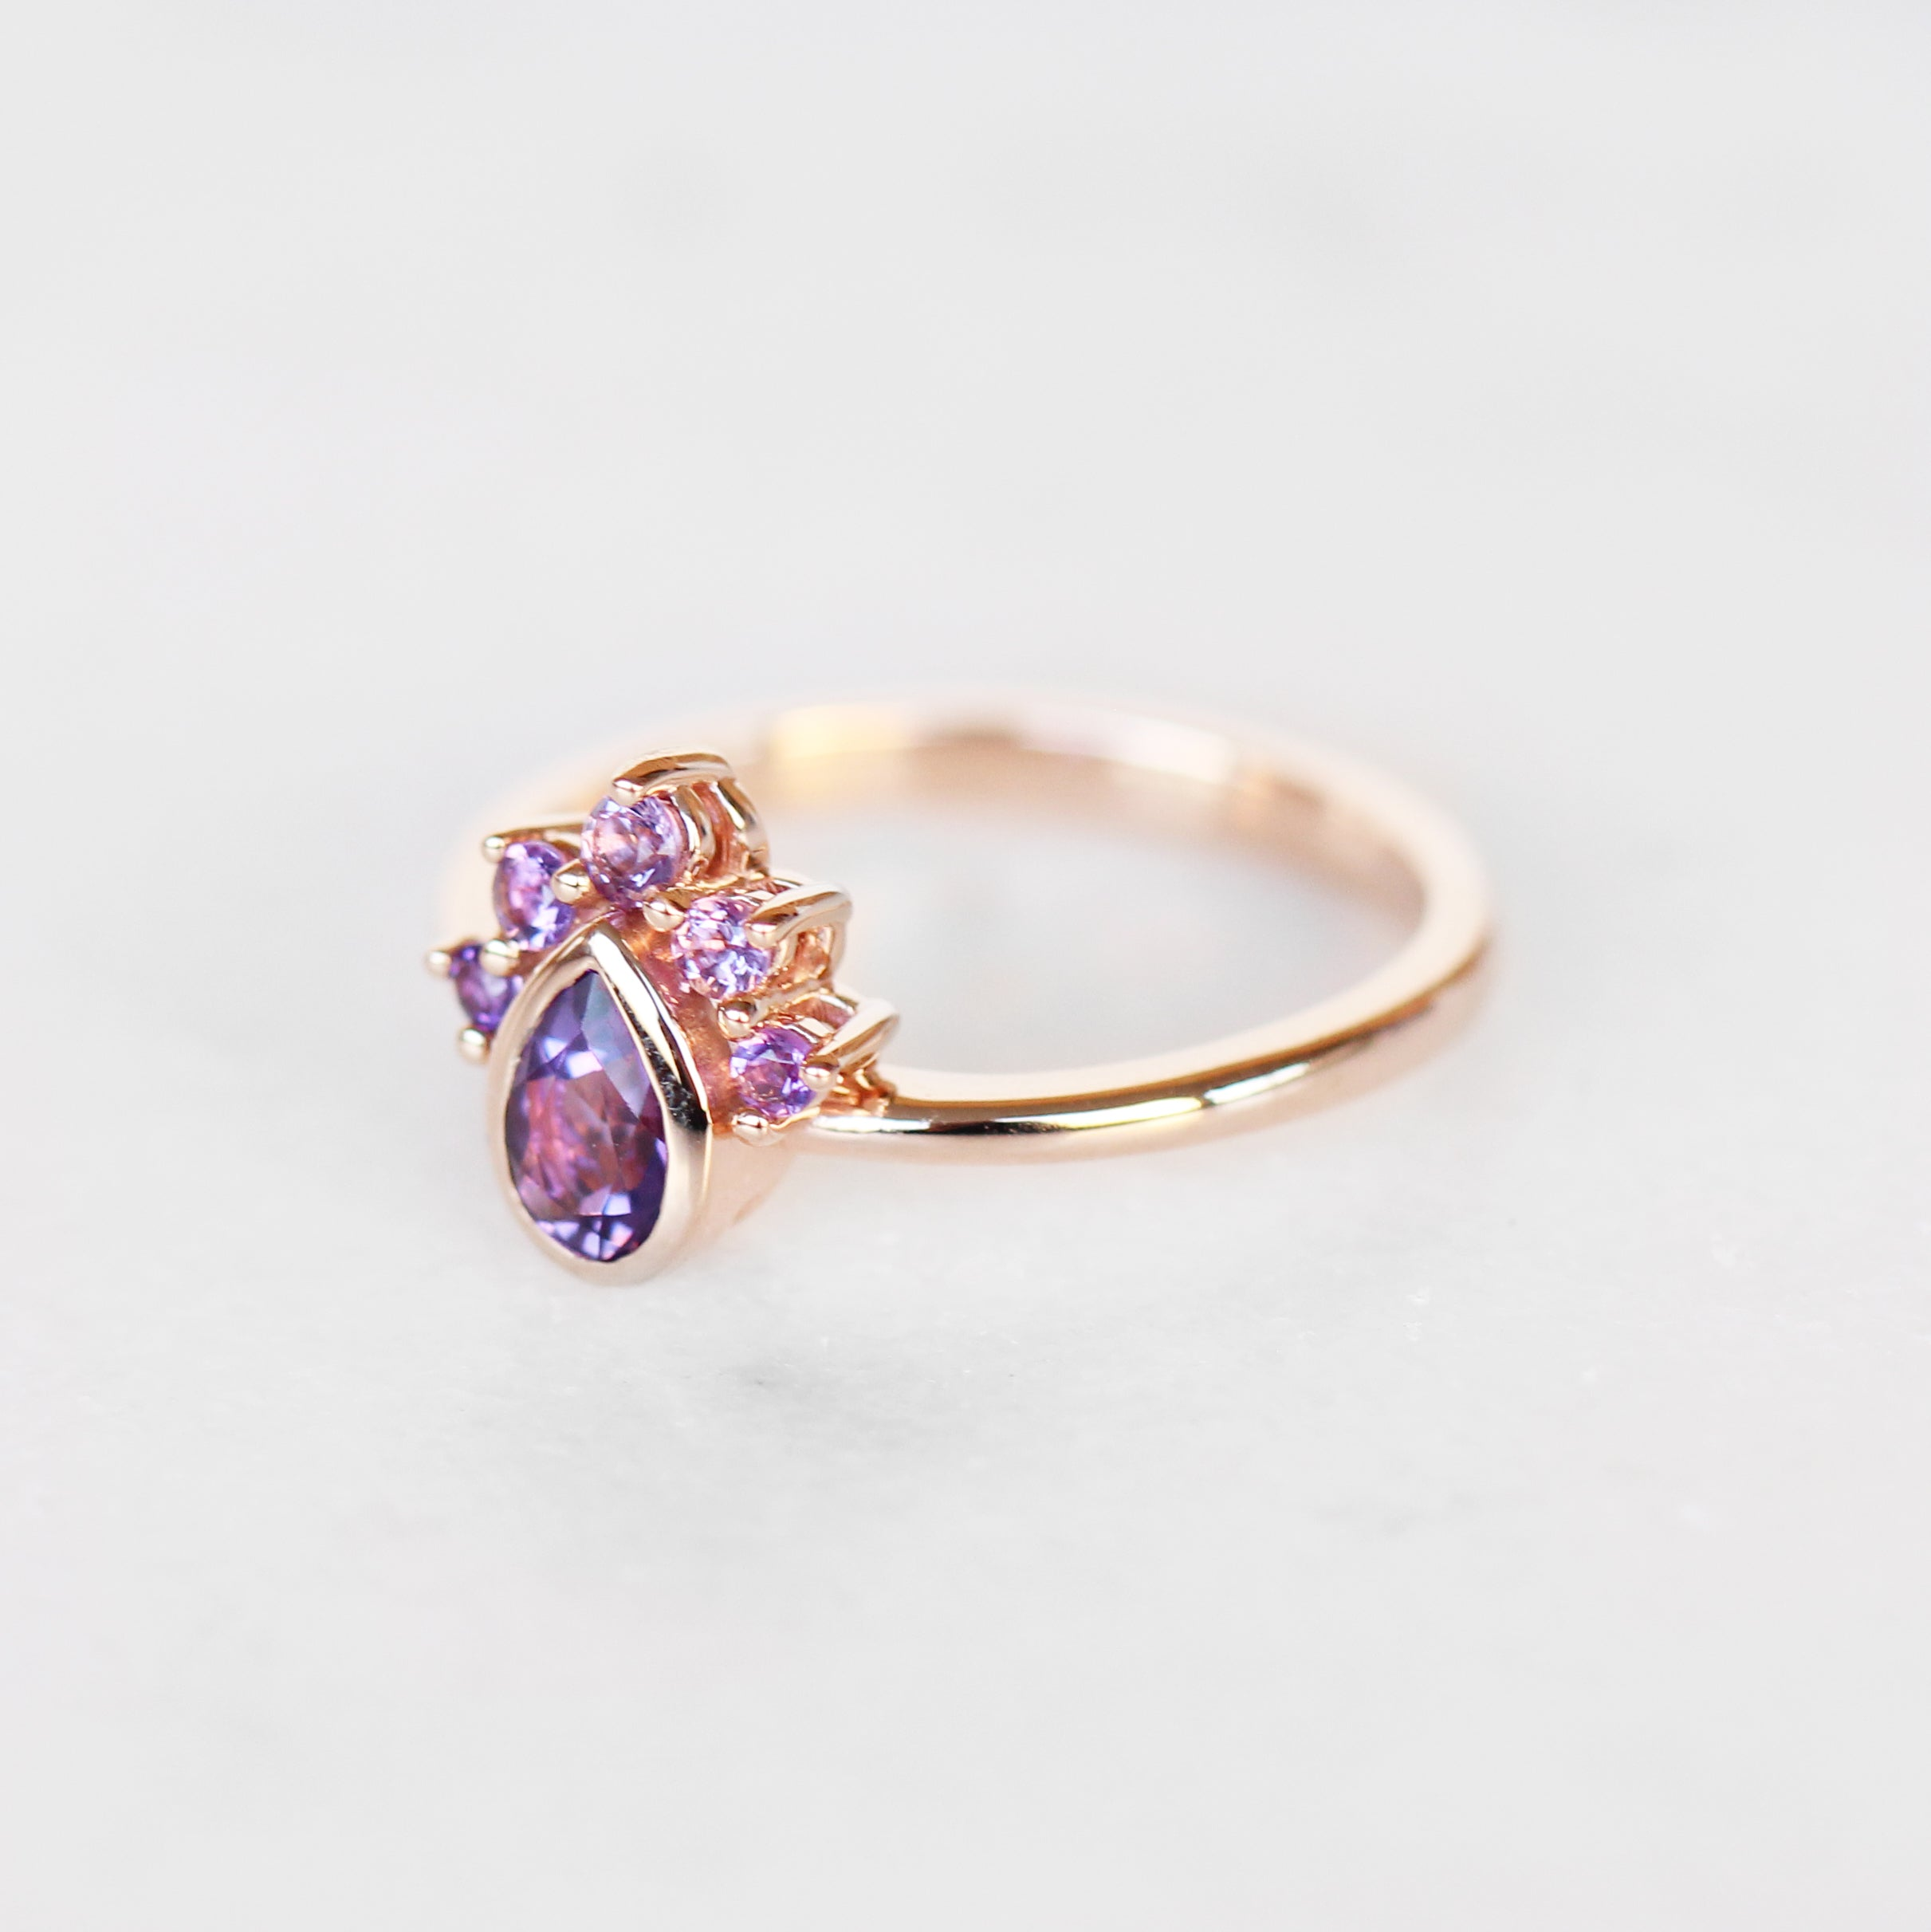 Ashlyn Amethyst Ring in 14k gold of your choice - Midwinter Co. Alternative Bridal Rings and Modern Fine Jewelry